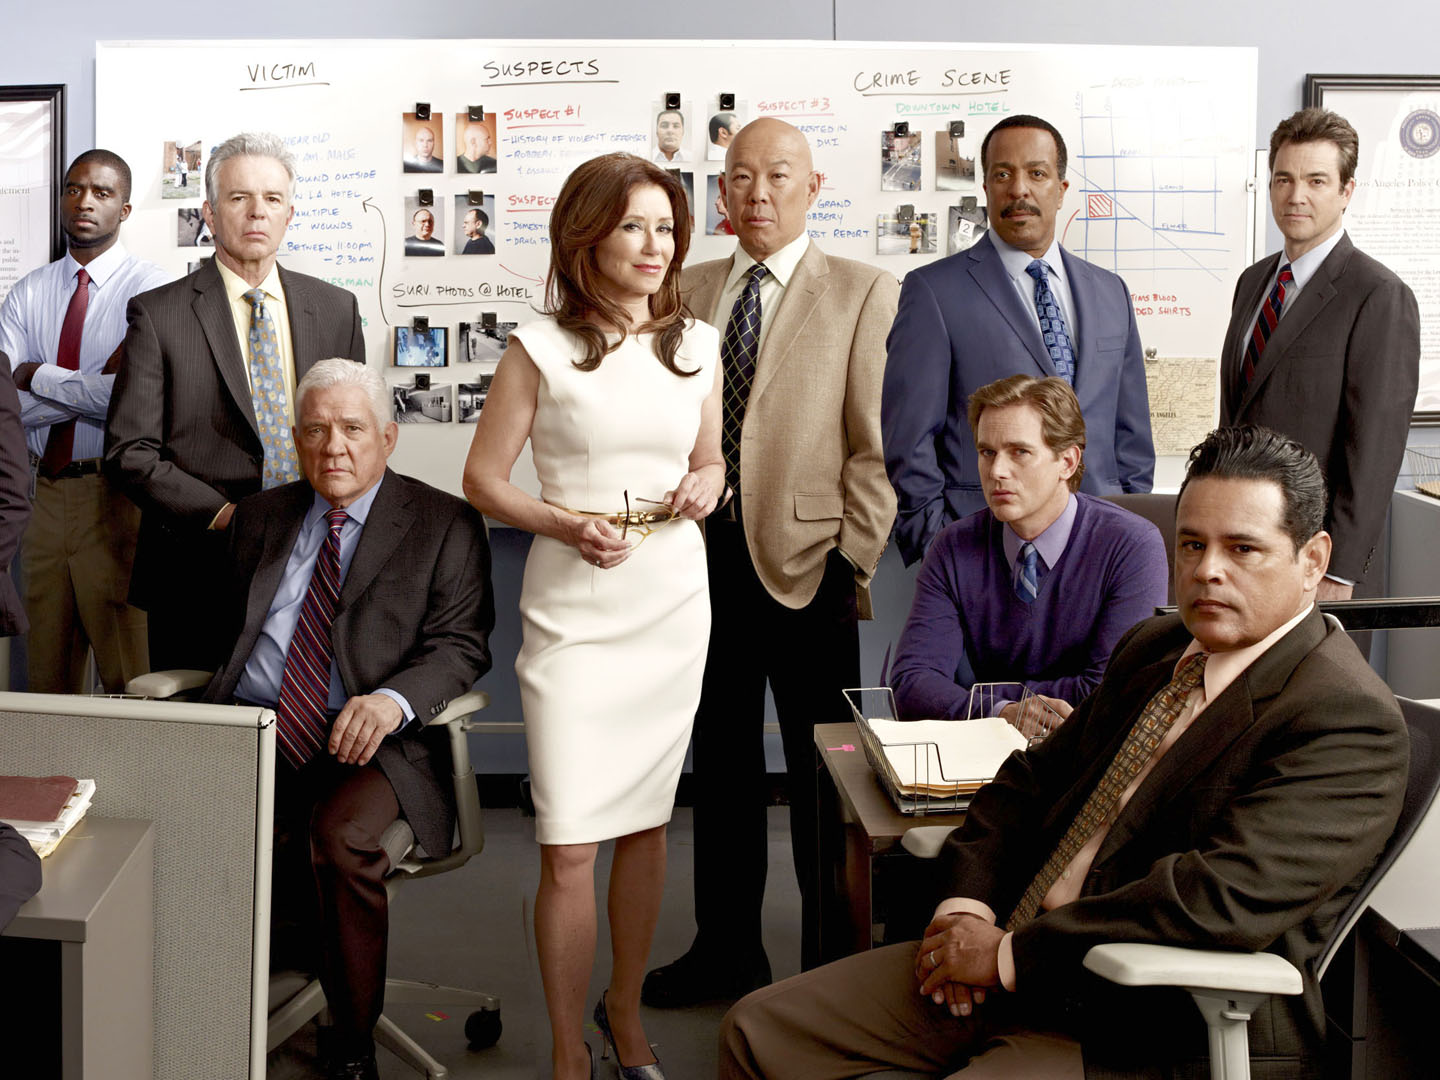 cast-of-major-crimes-3.jpg